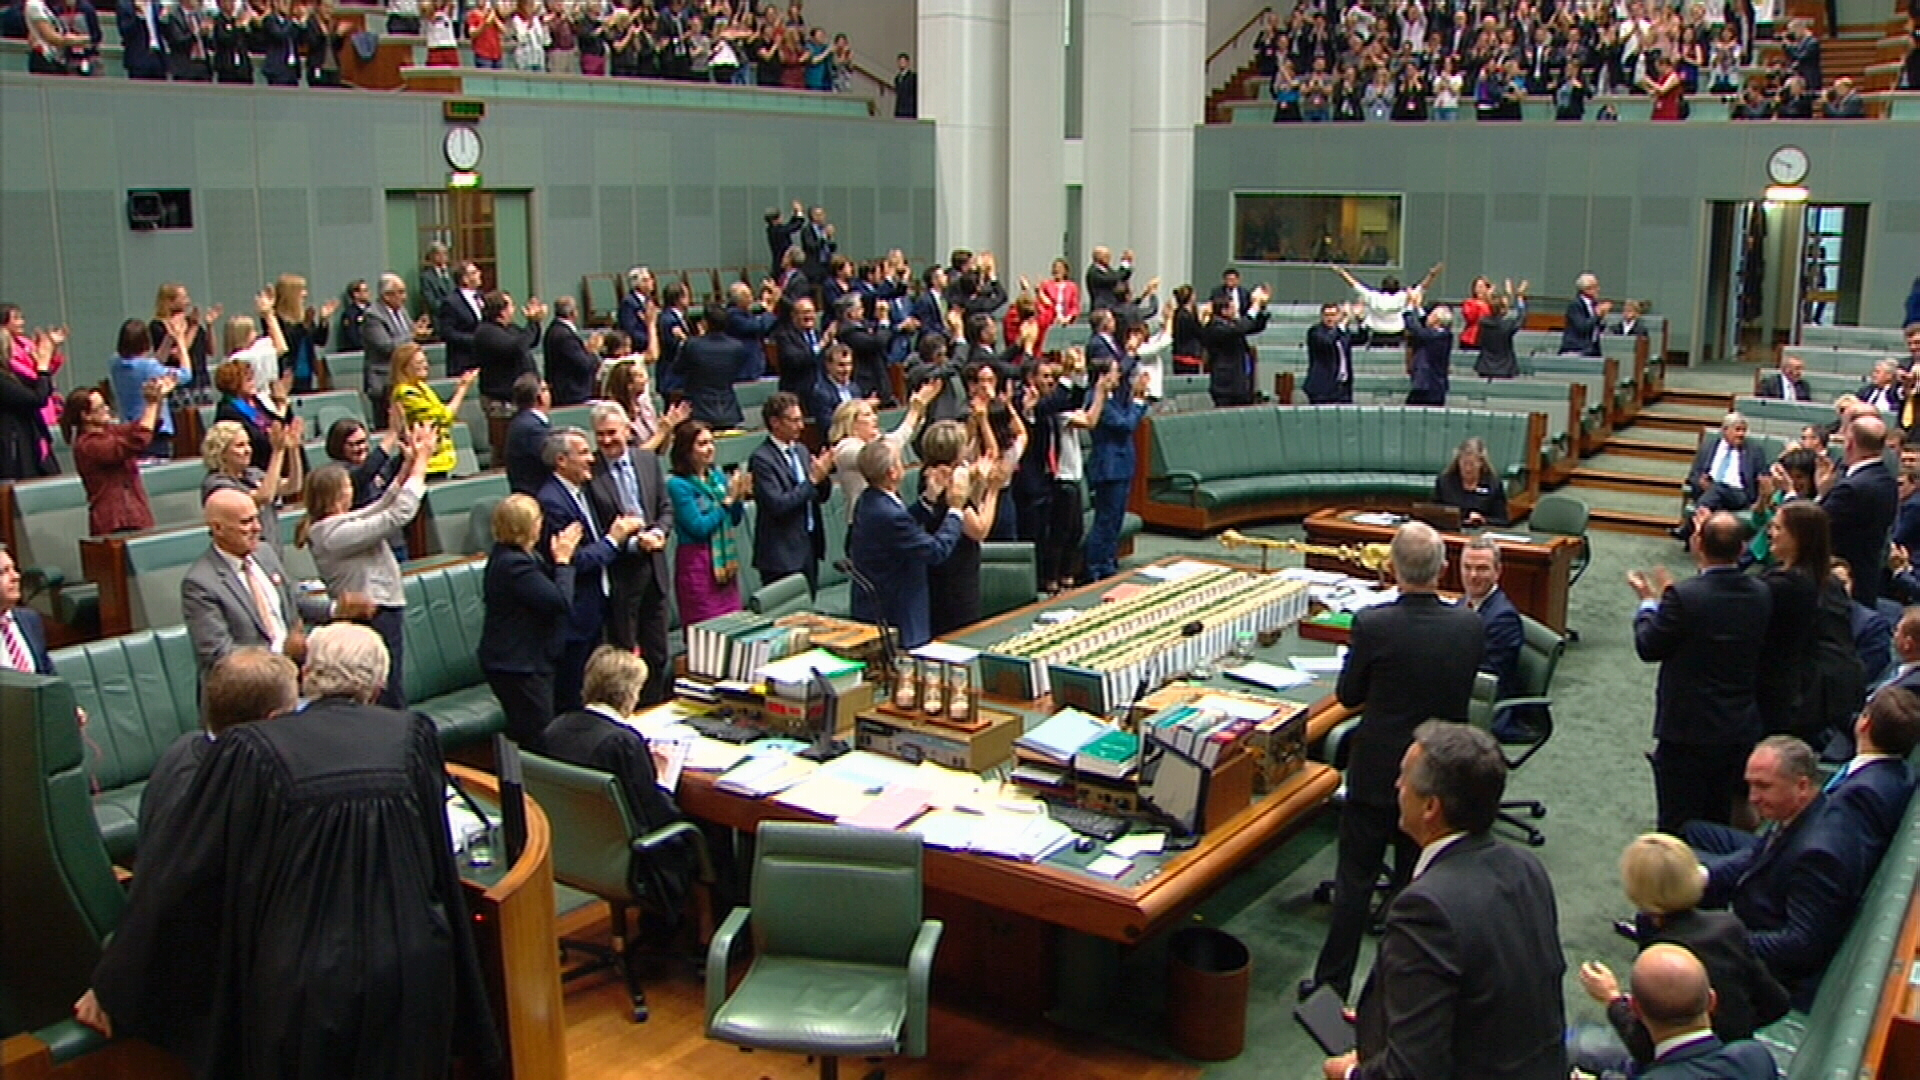 Same-sex marriage bill passes parliament